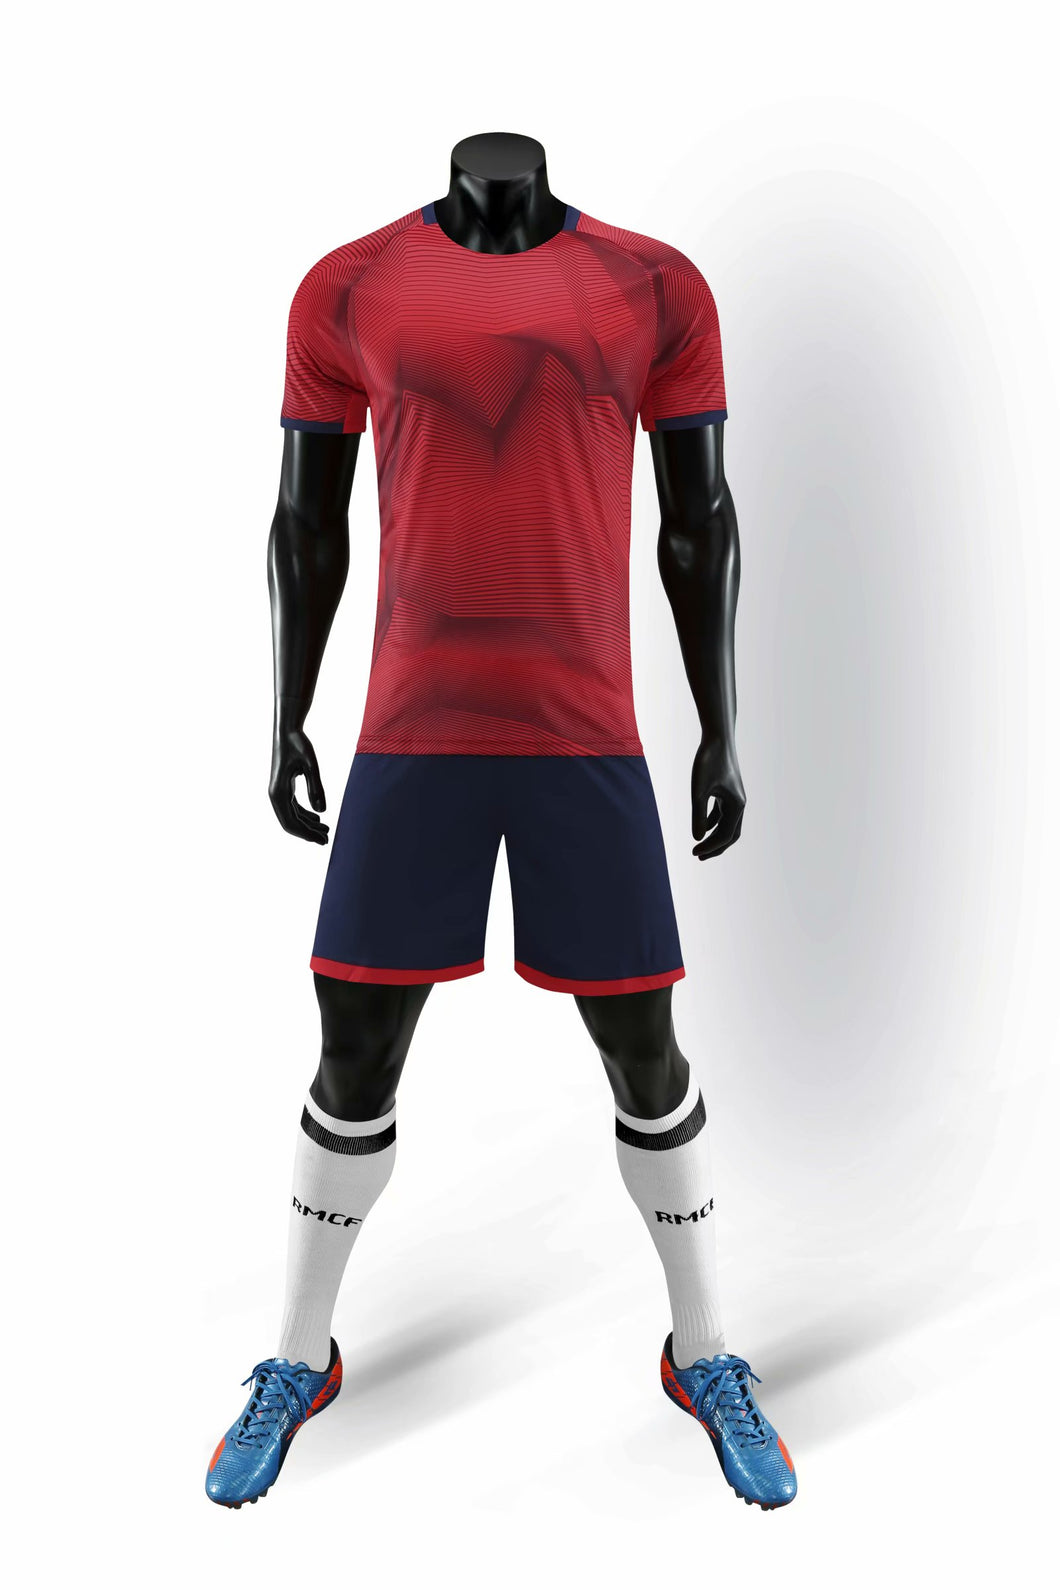 Full Football Kit - 3D Graphic Red Design with Black Shorts.